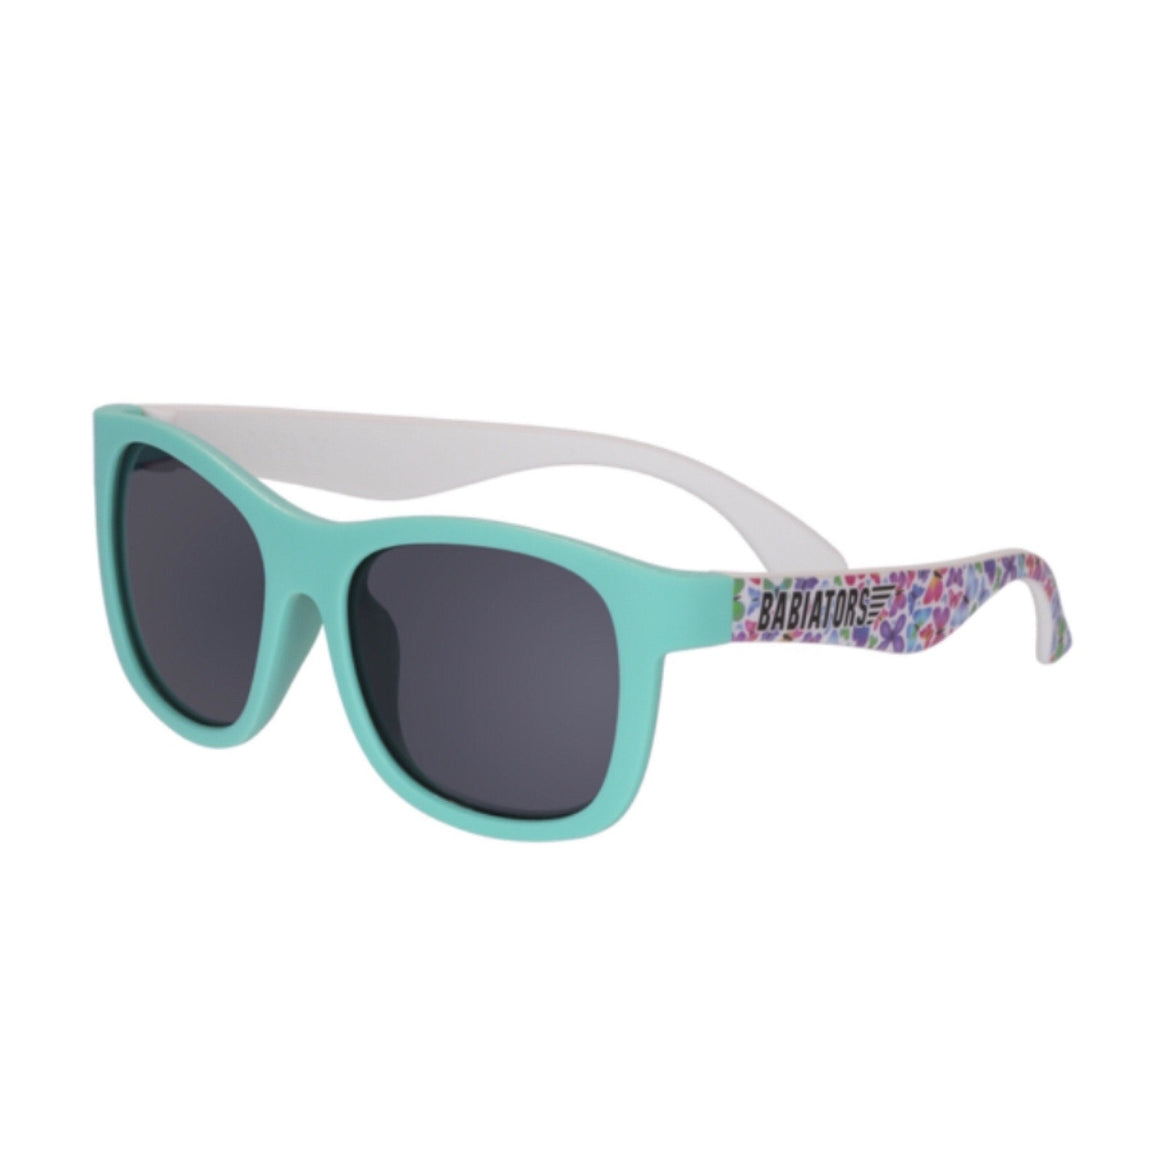 Babiators Navigator Limited Edition Sunglasses - Social Butterfly Turquoise Sunglasses Babiators